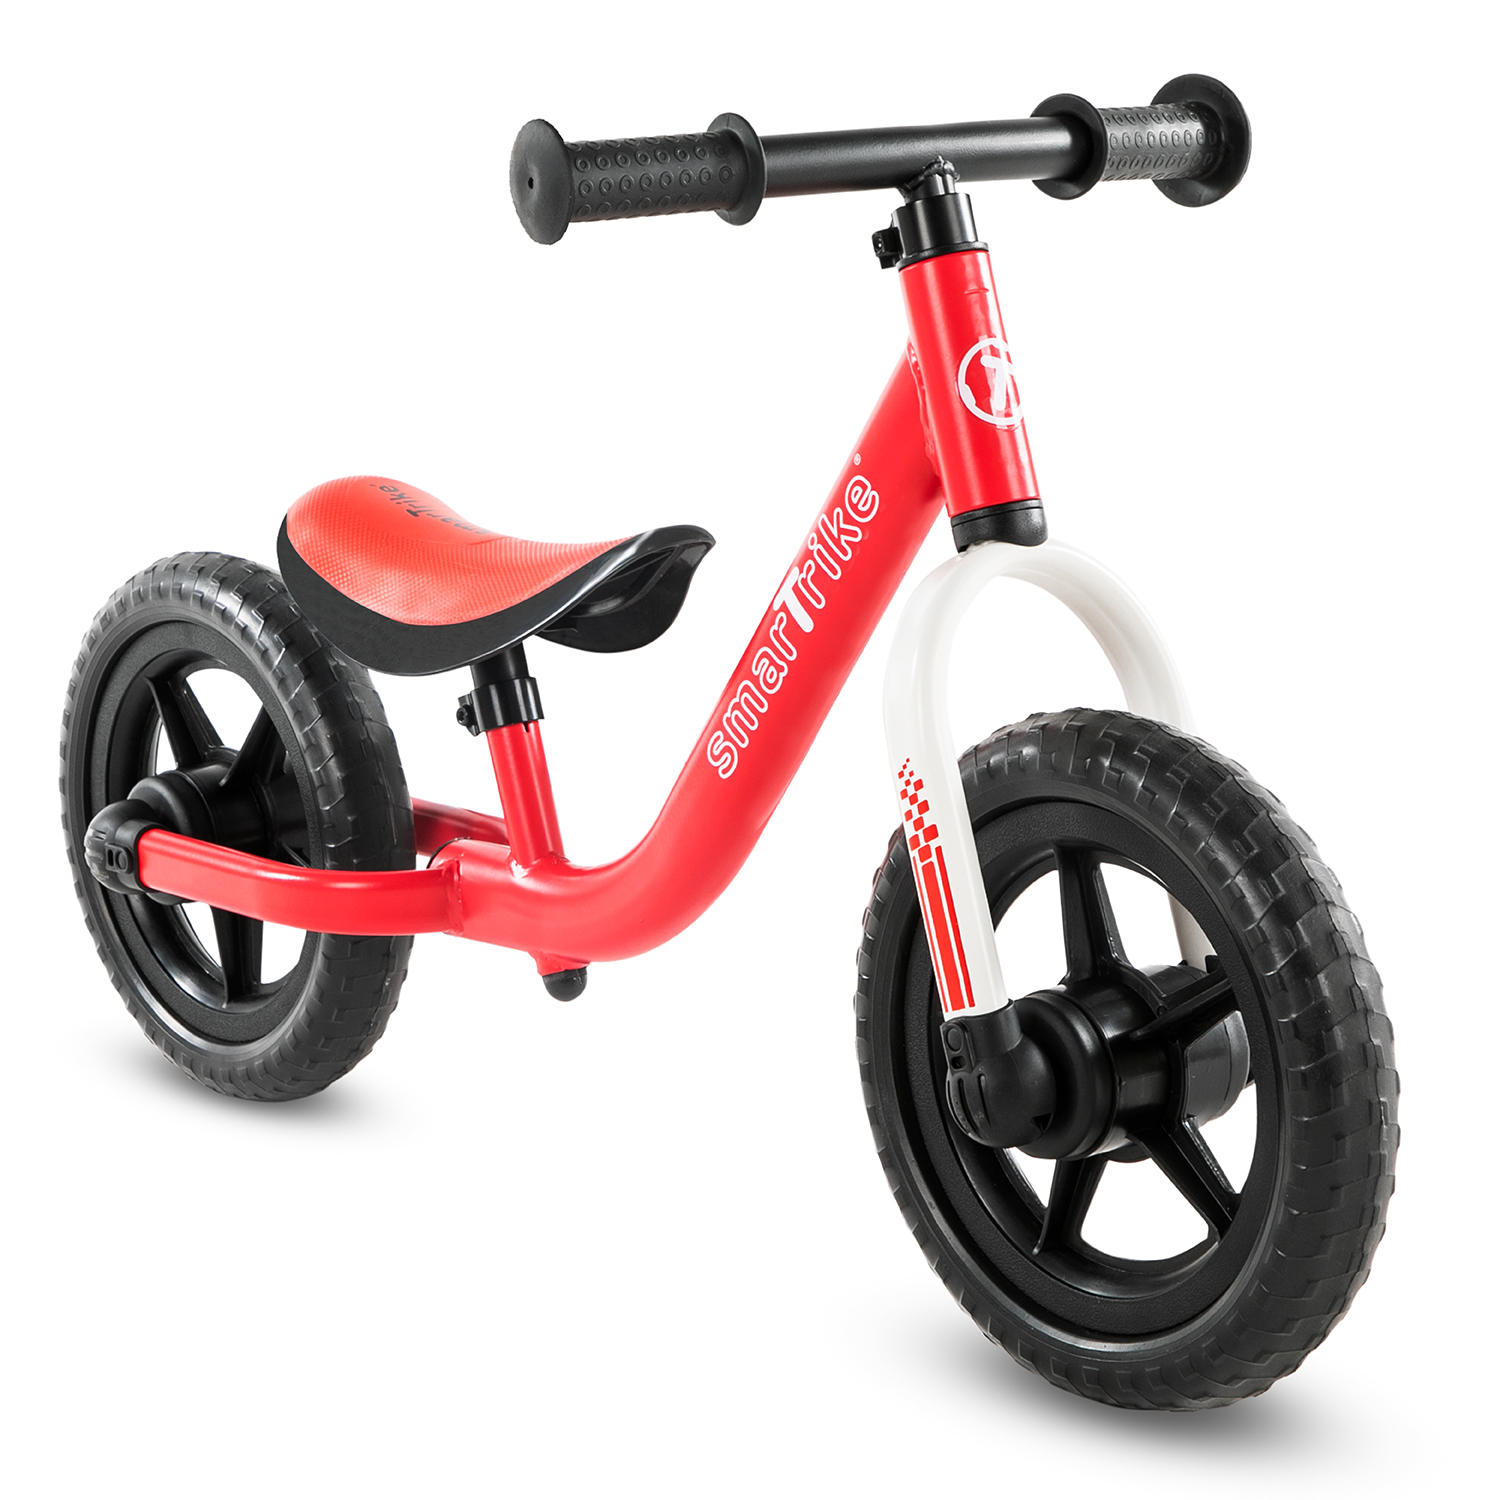 SmarTrike Balance Bike with Adjustable Seat & Handlebar